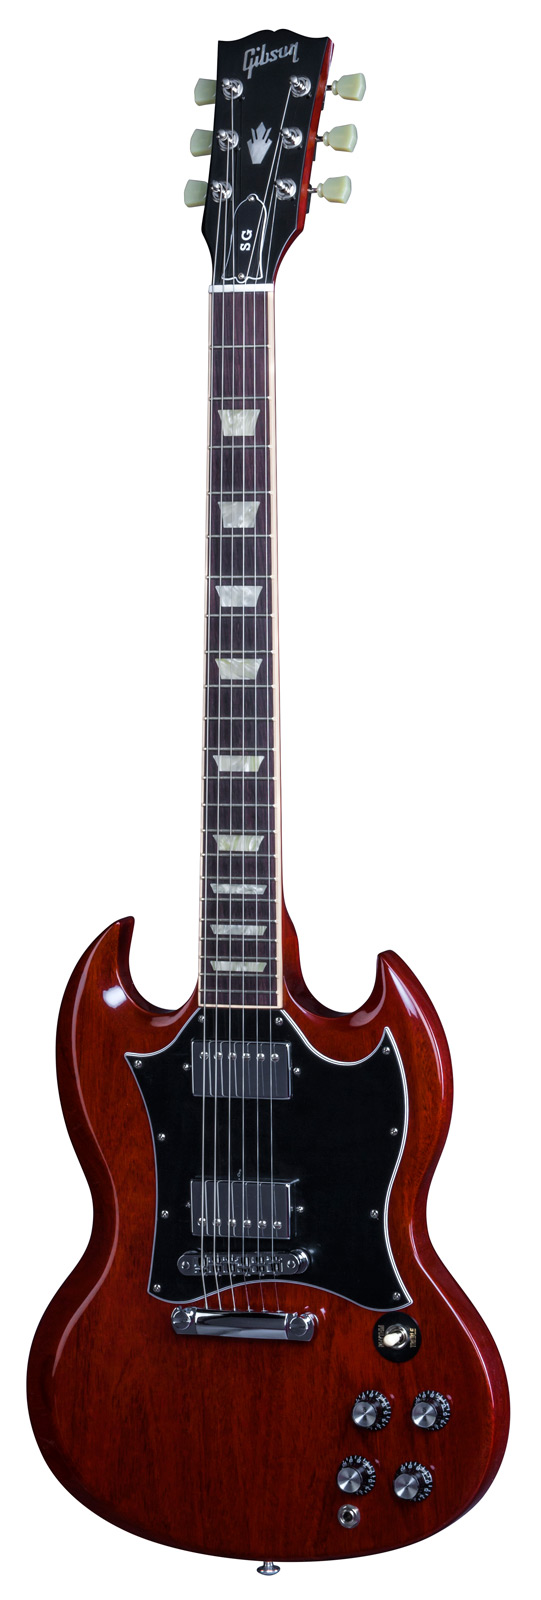 Gibson Sg Standard 2016 T Heritage Cherry + Housse